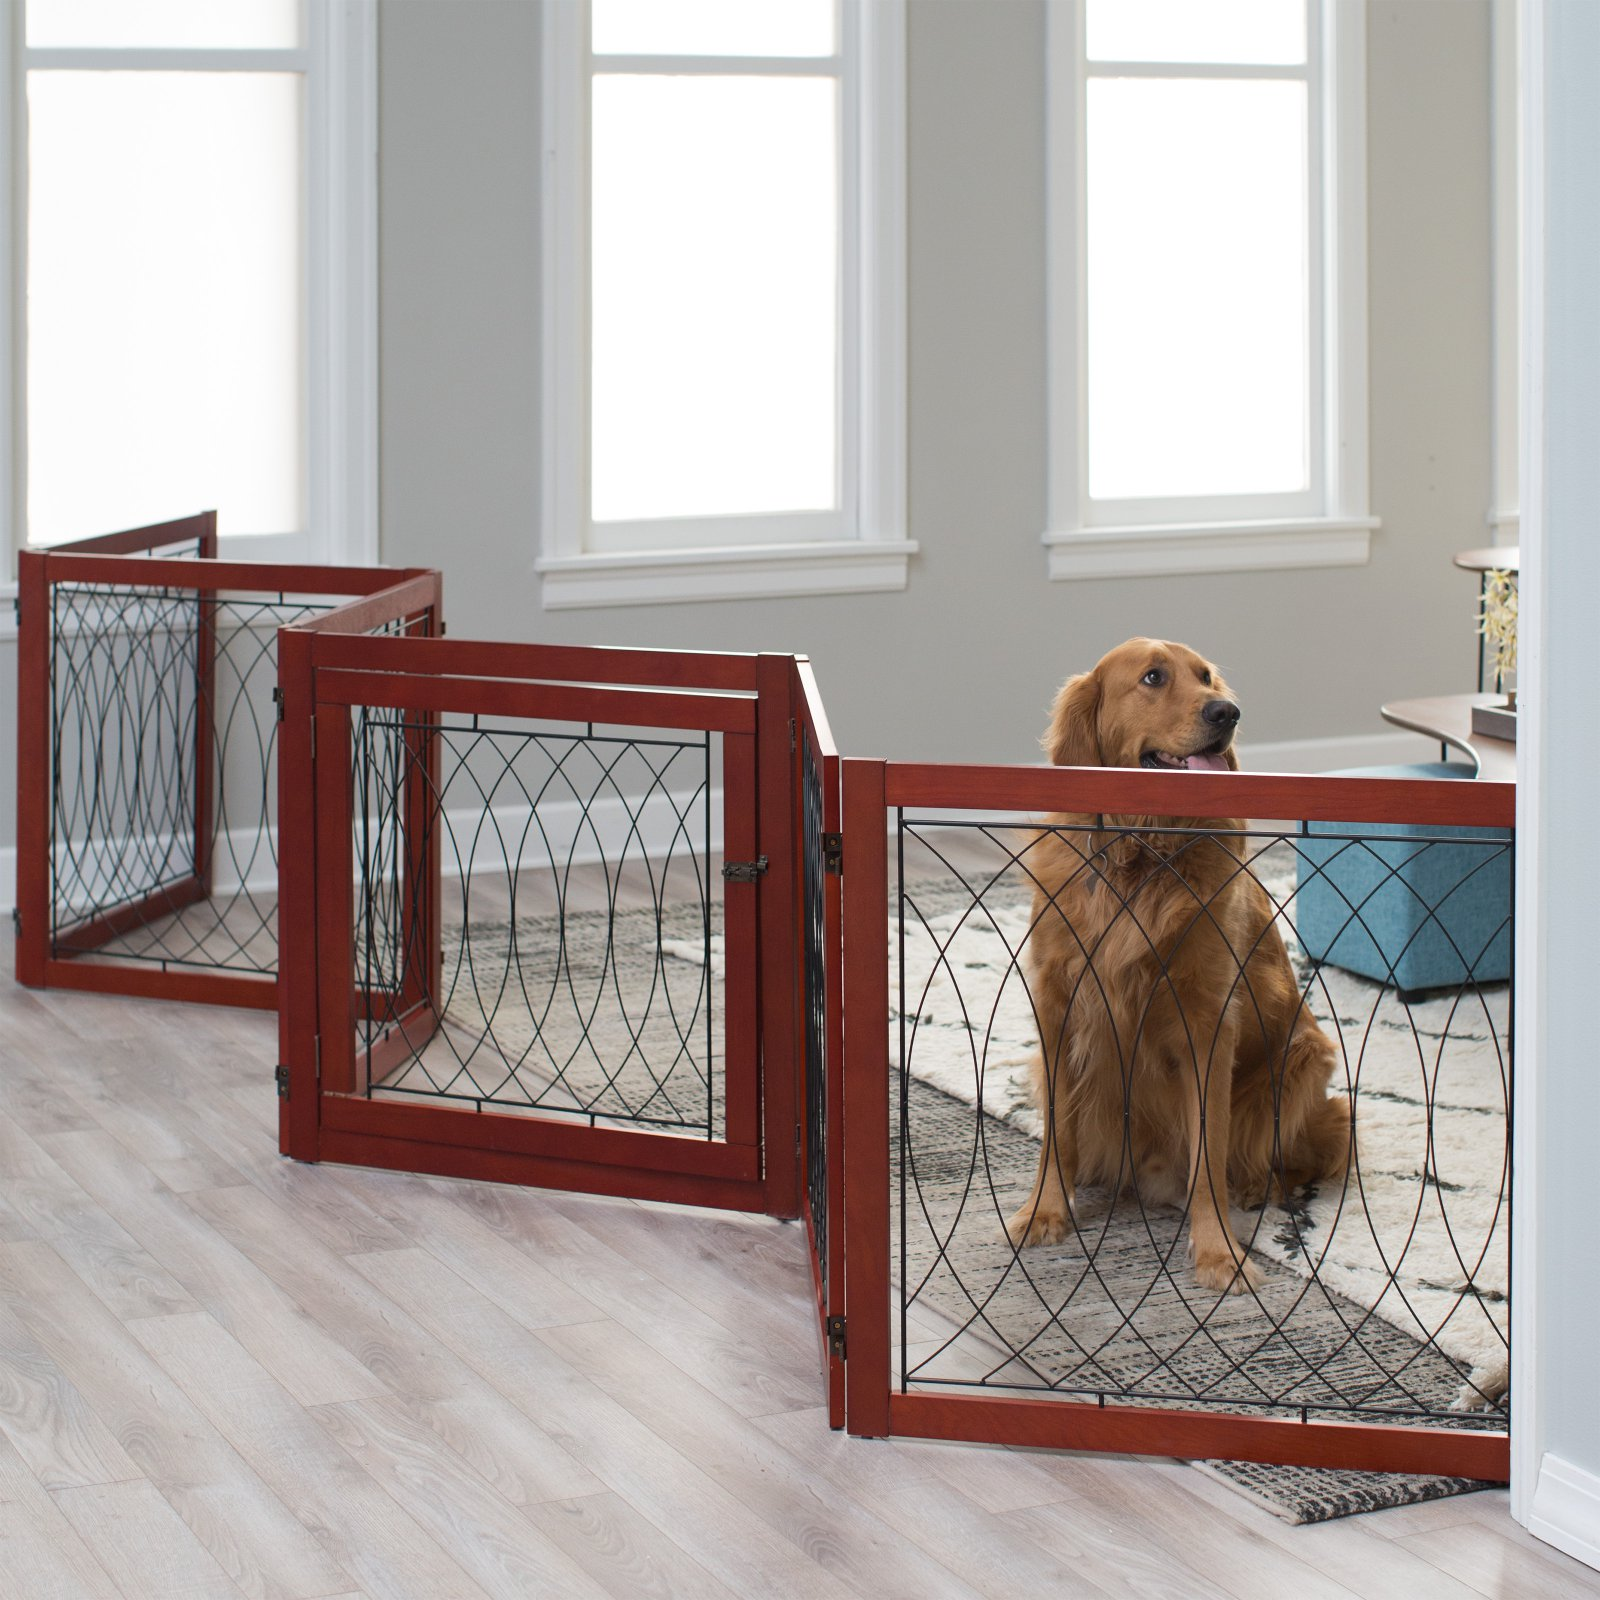 Boomer & George Ruby 6 Panel Configurable Freestanding Pet Gate / Playpen - Cherry Brown